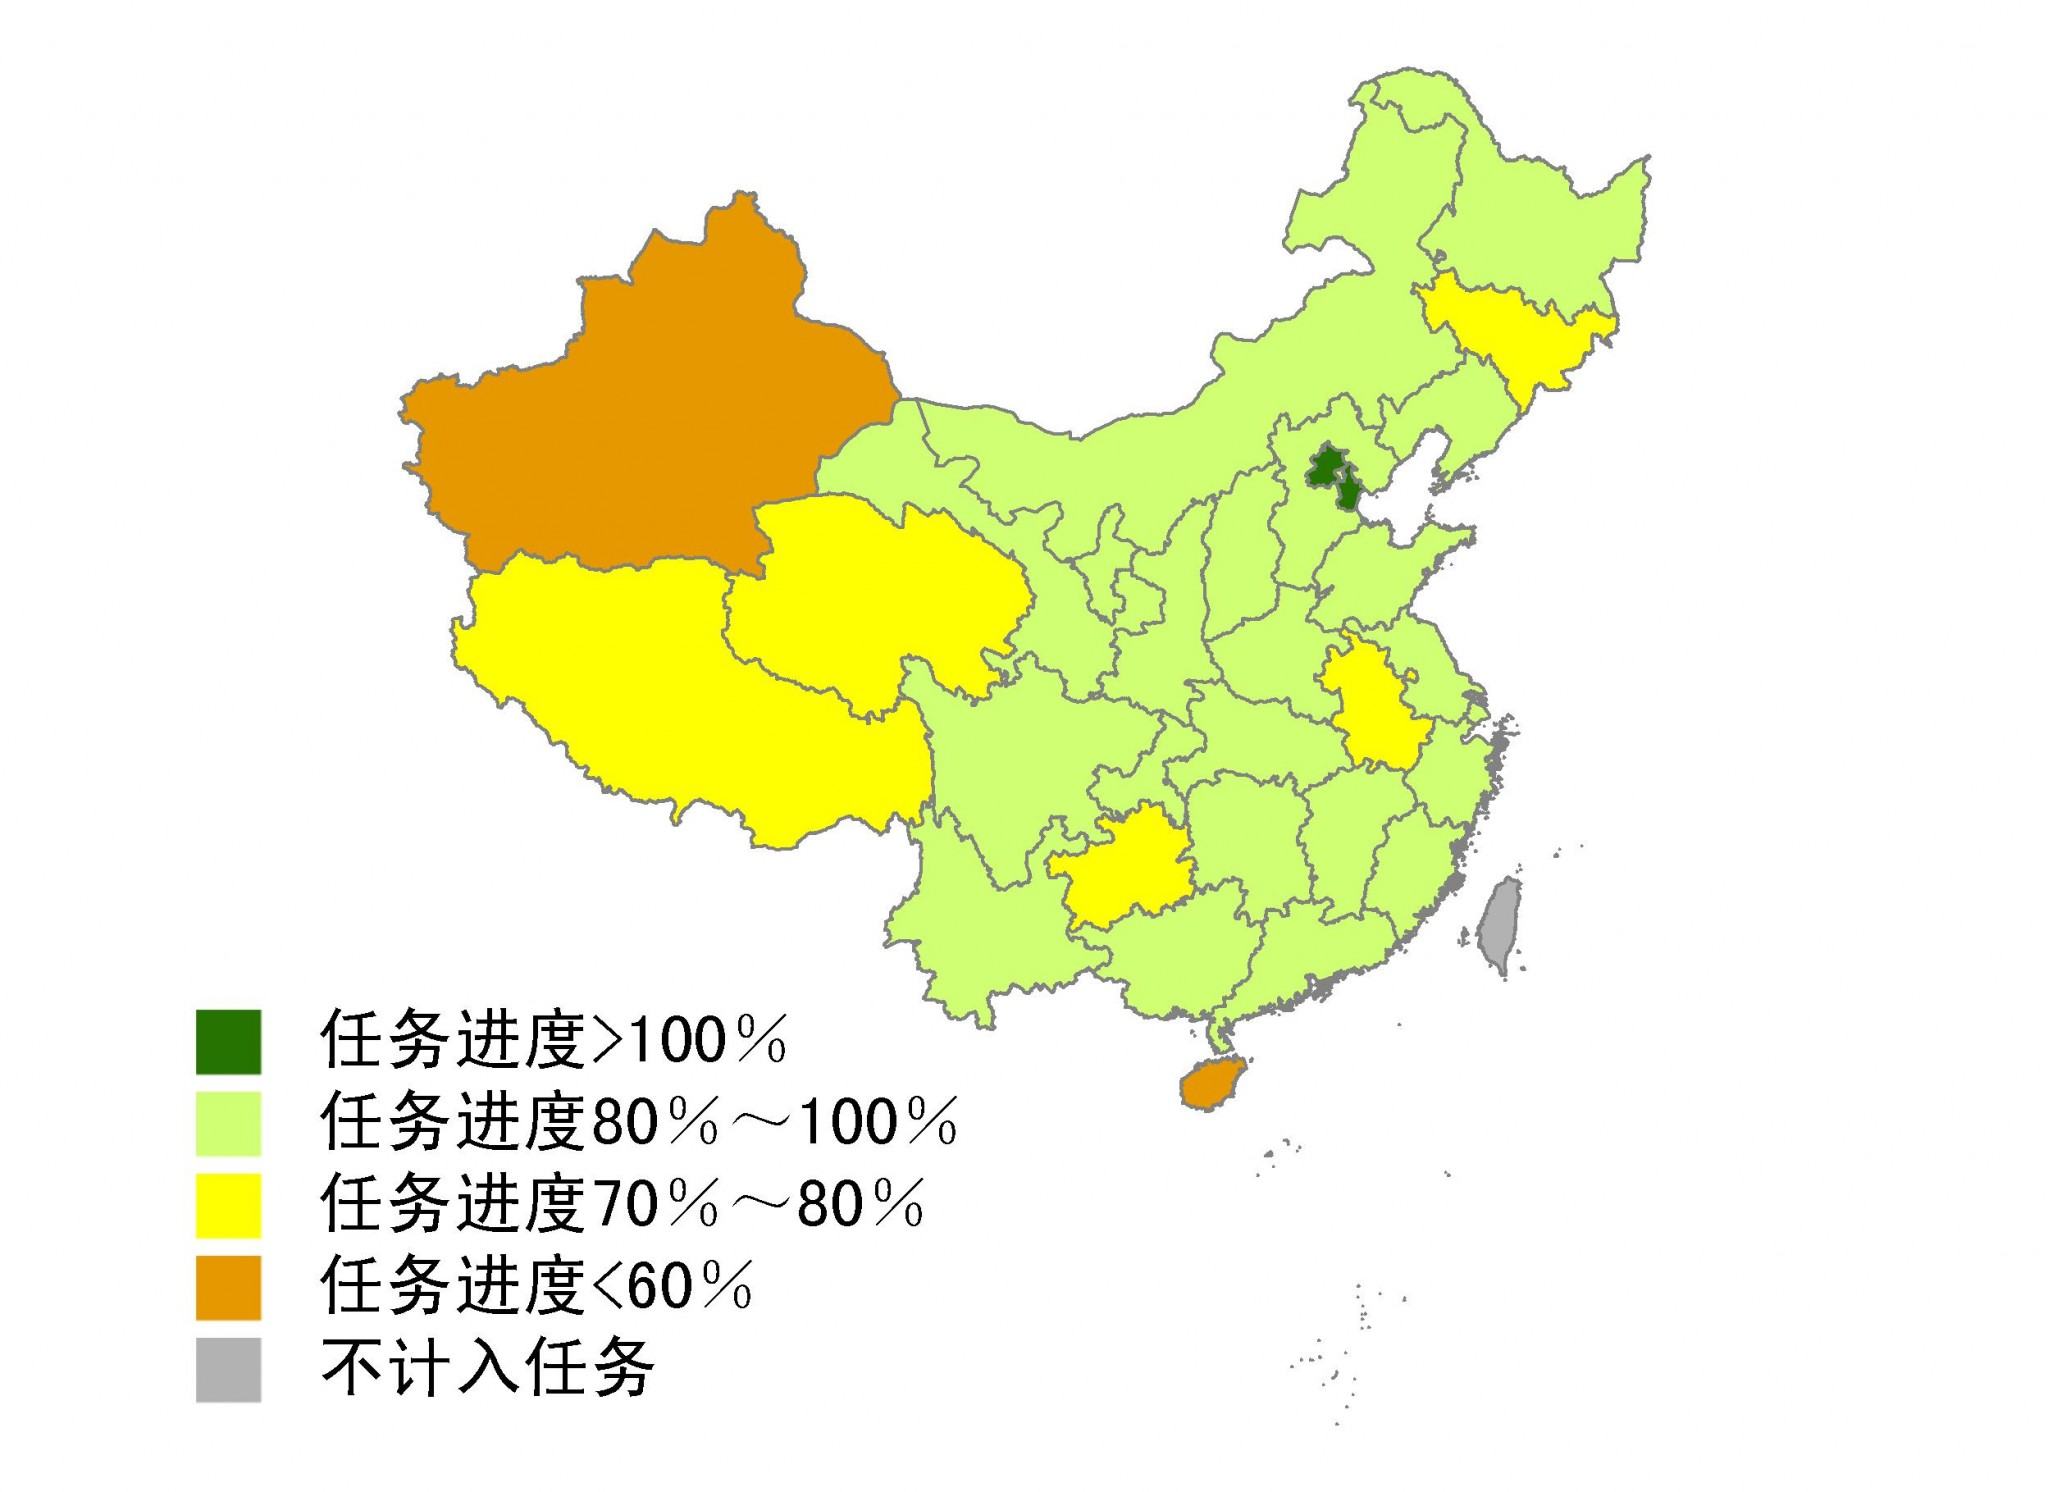 emission reduction rate in china